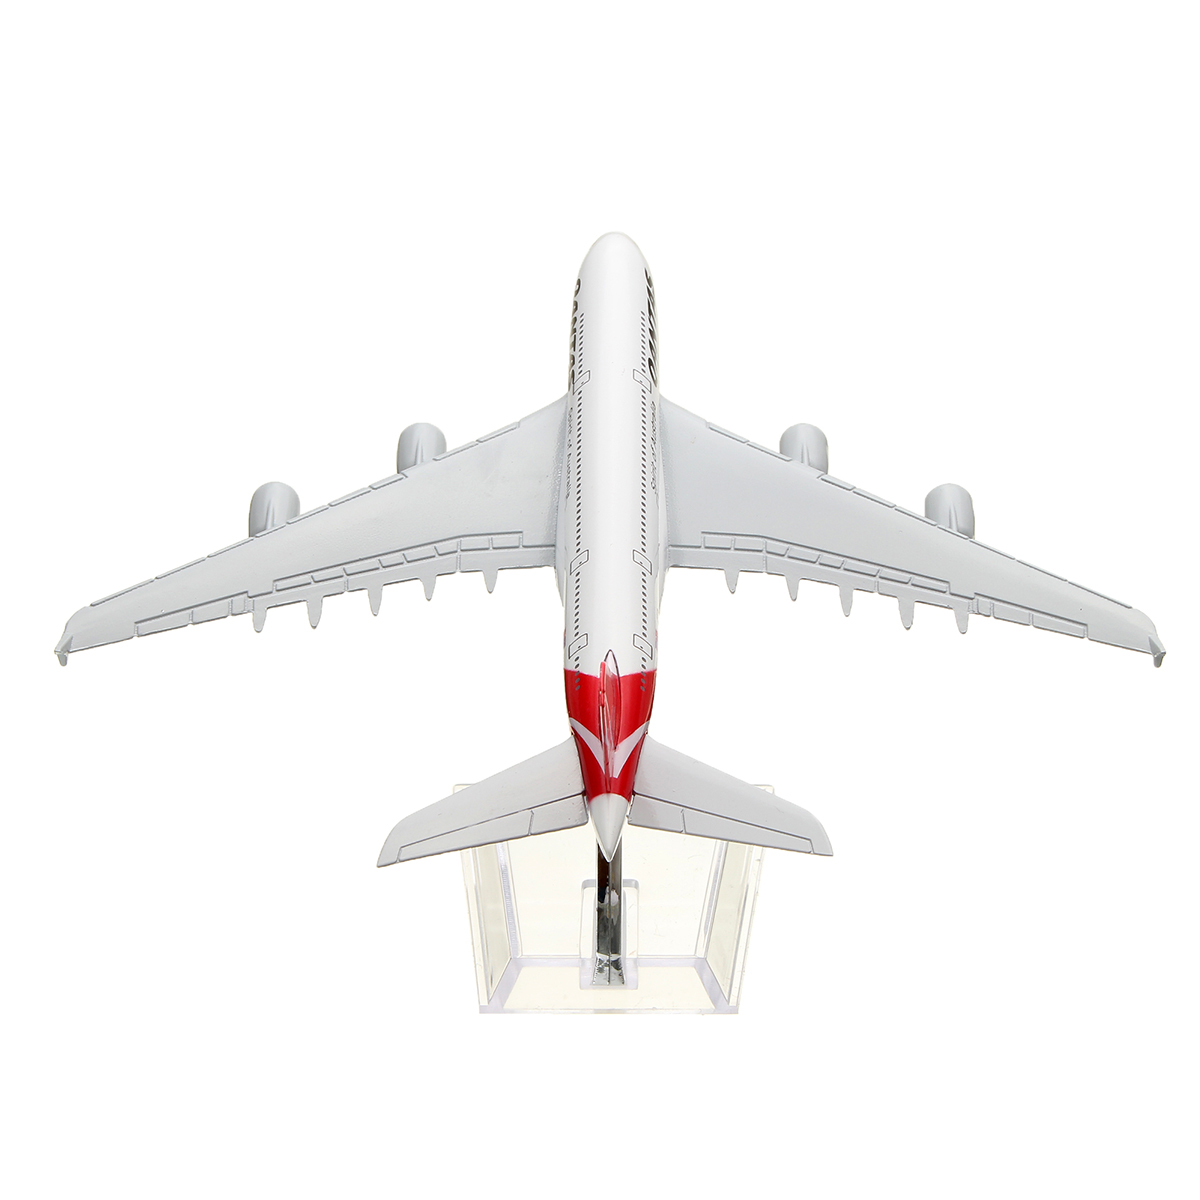 16cm Airplane Metal Plane Model Aircraft A380 AUSTRALIA QANTAS Aeroplane Scale Desk Toy